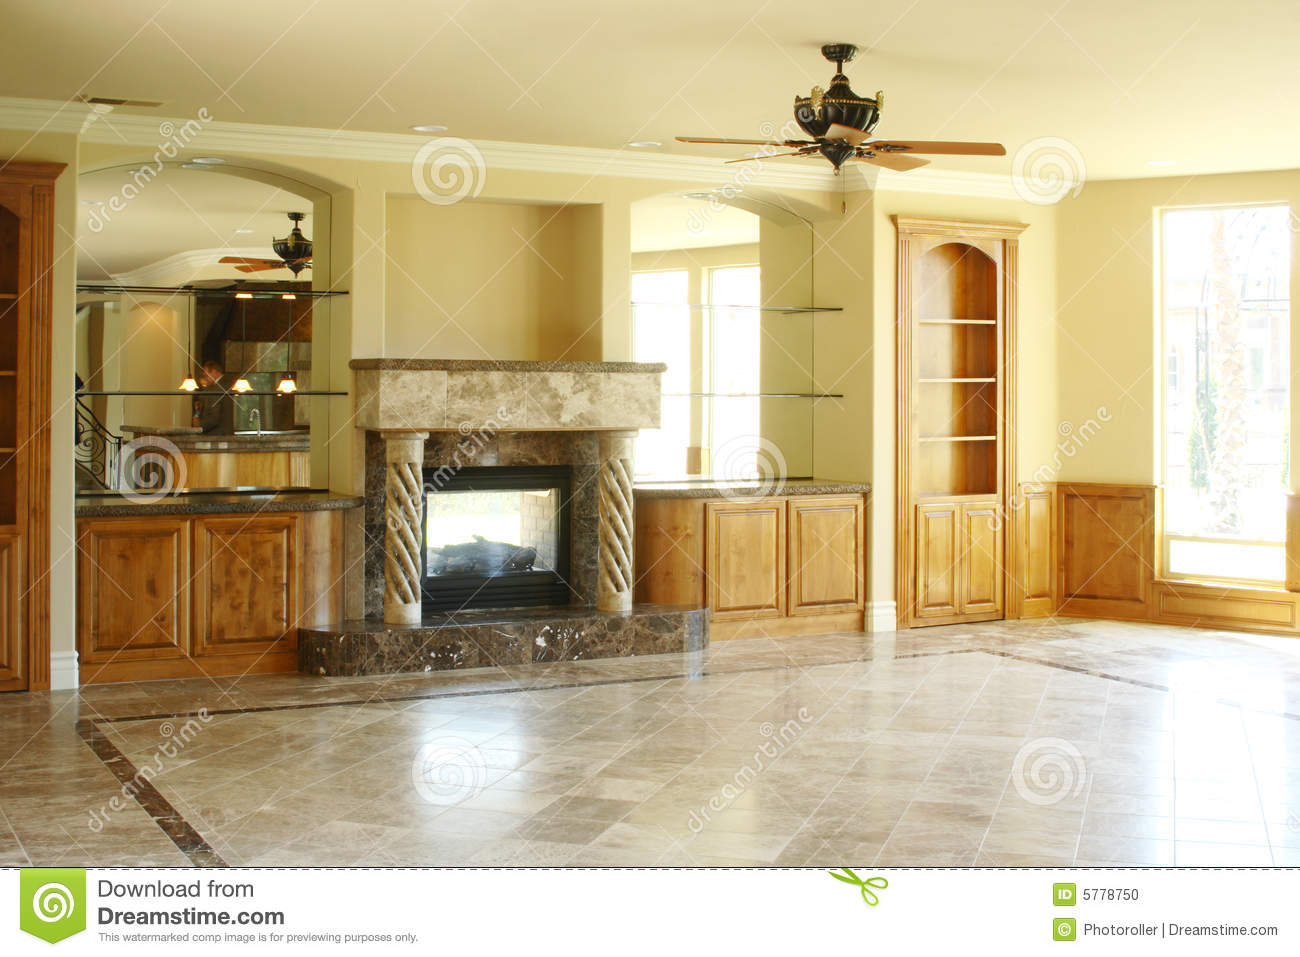 Fireplace In A Luxury Home Stock Photo Image 5778750